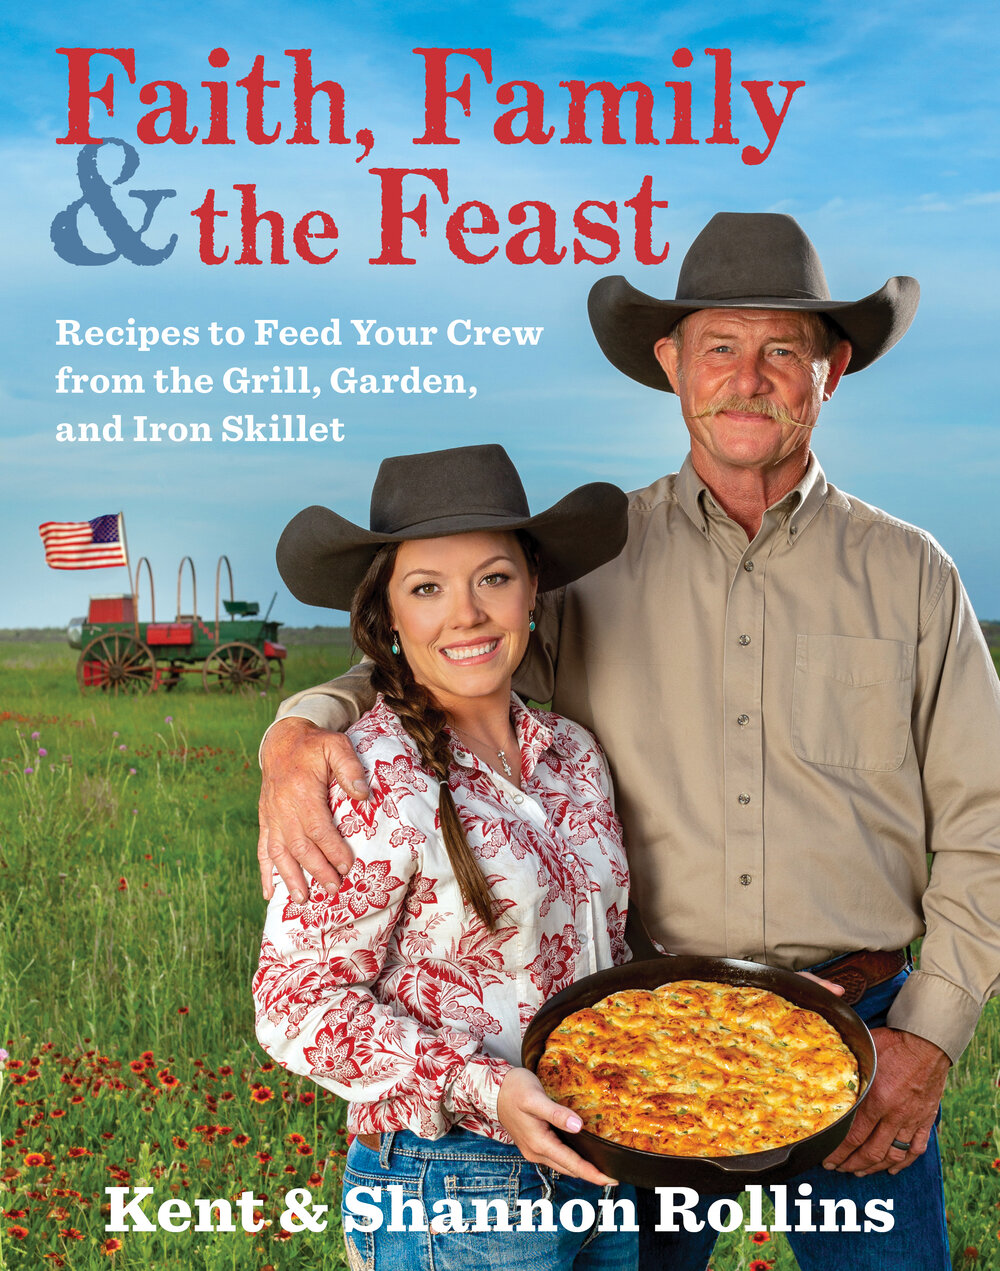 Faith, Family & the Feast  Kent Rollins — Cookery by the Book